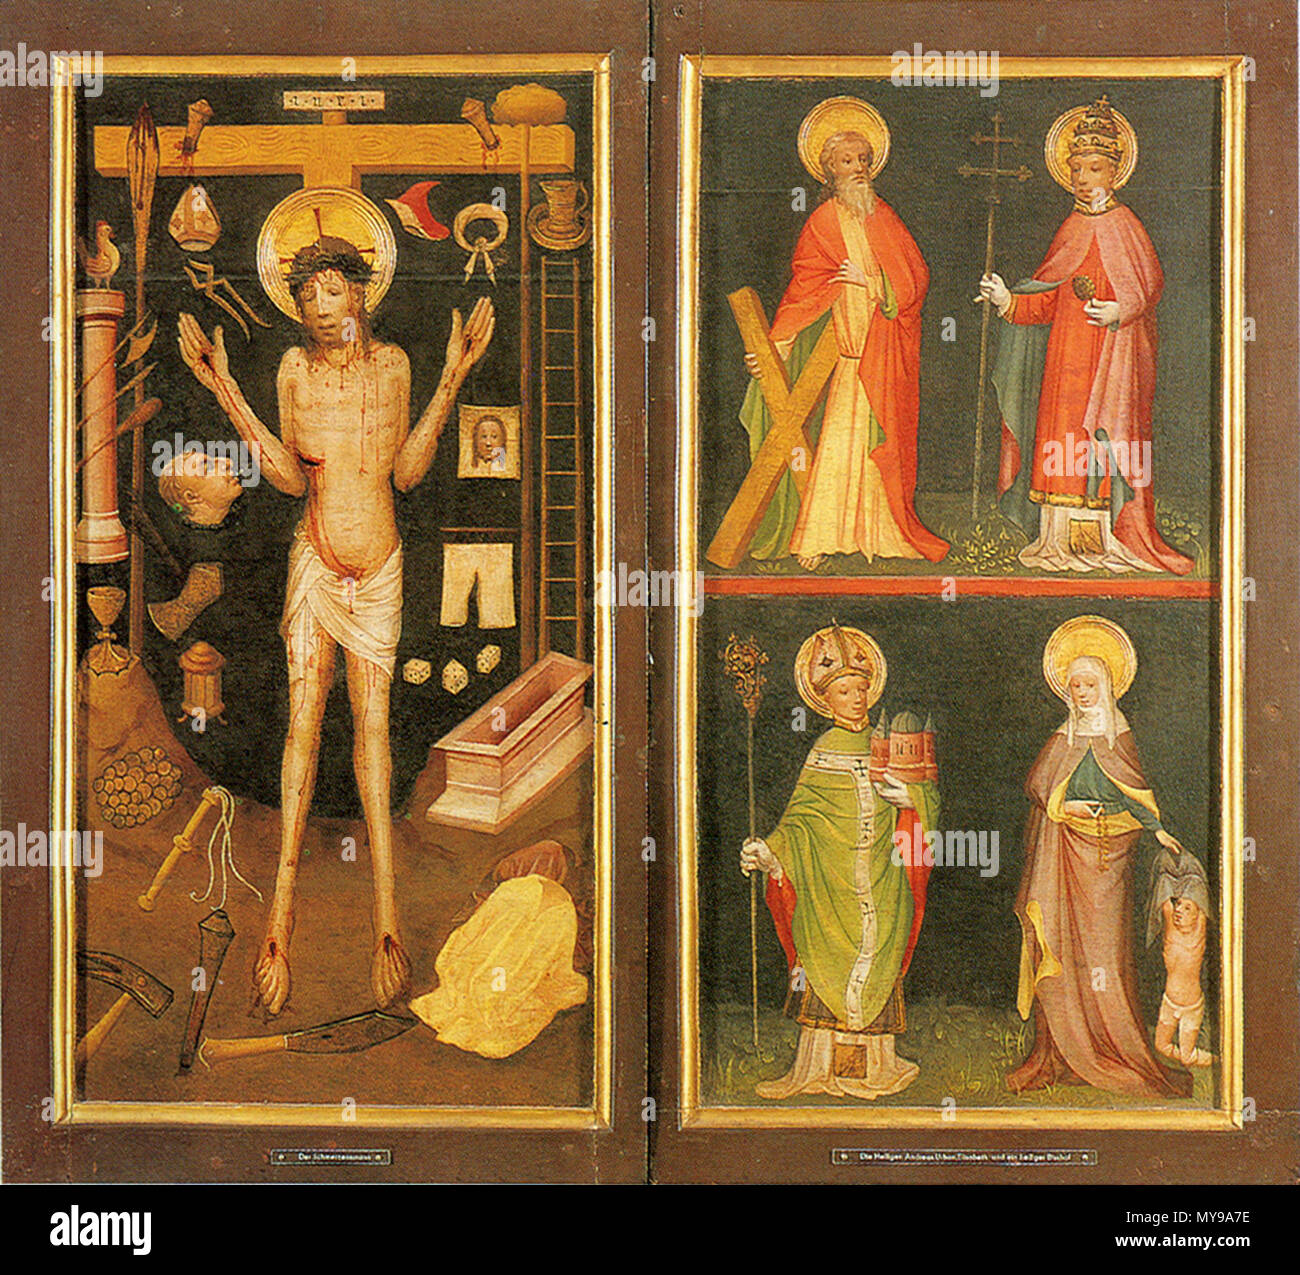 . Man of Sorrow with Arma Christi and Saints Andrew, Urban, Heribert of Deutz and Elisabeth of Hungary - closed Altar of Holy Kinship . circa 1420. Master of Holy Kinship the Elder 35 Altar of the Holy Kinship (closed) Stock Photo